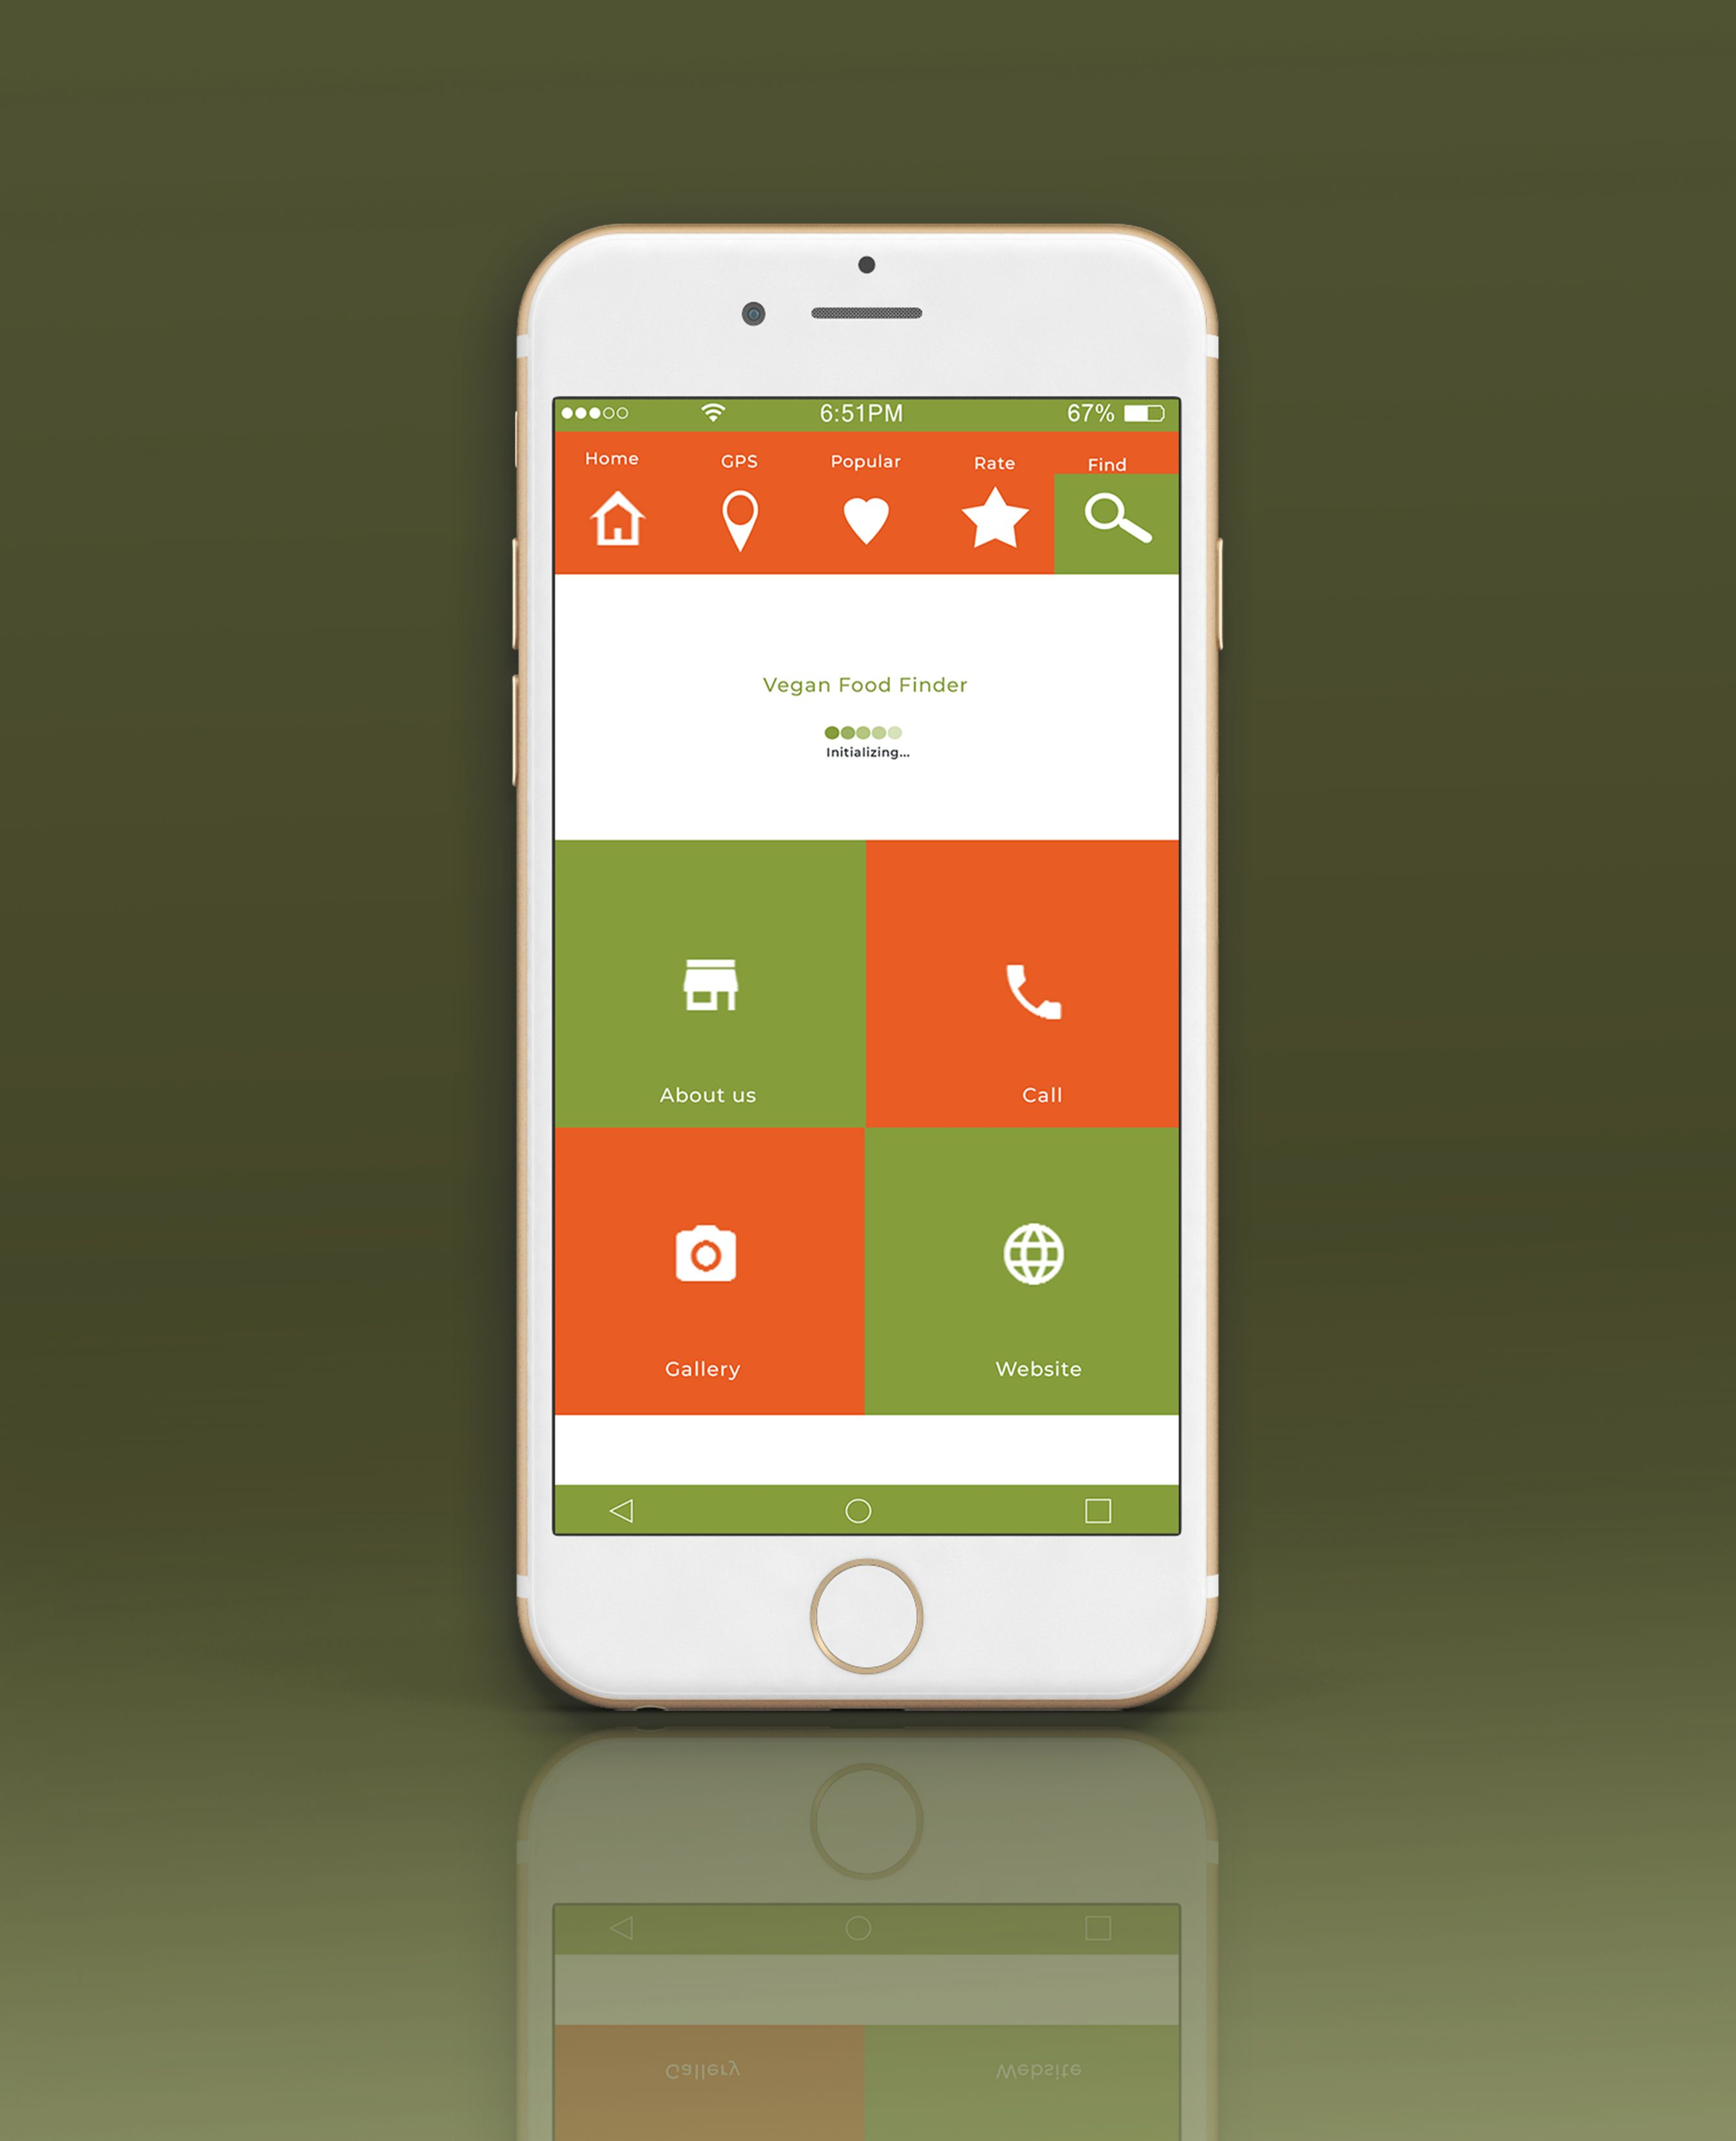 Mobile Vegan Food Finder App - 6  PSD Templates  Screenshot 6